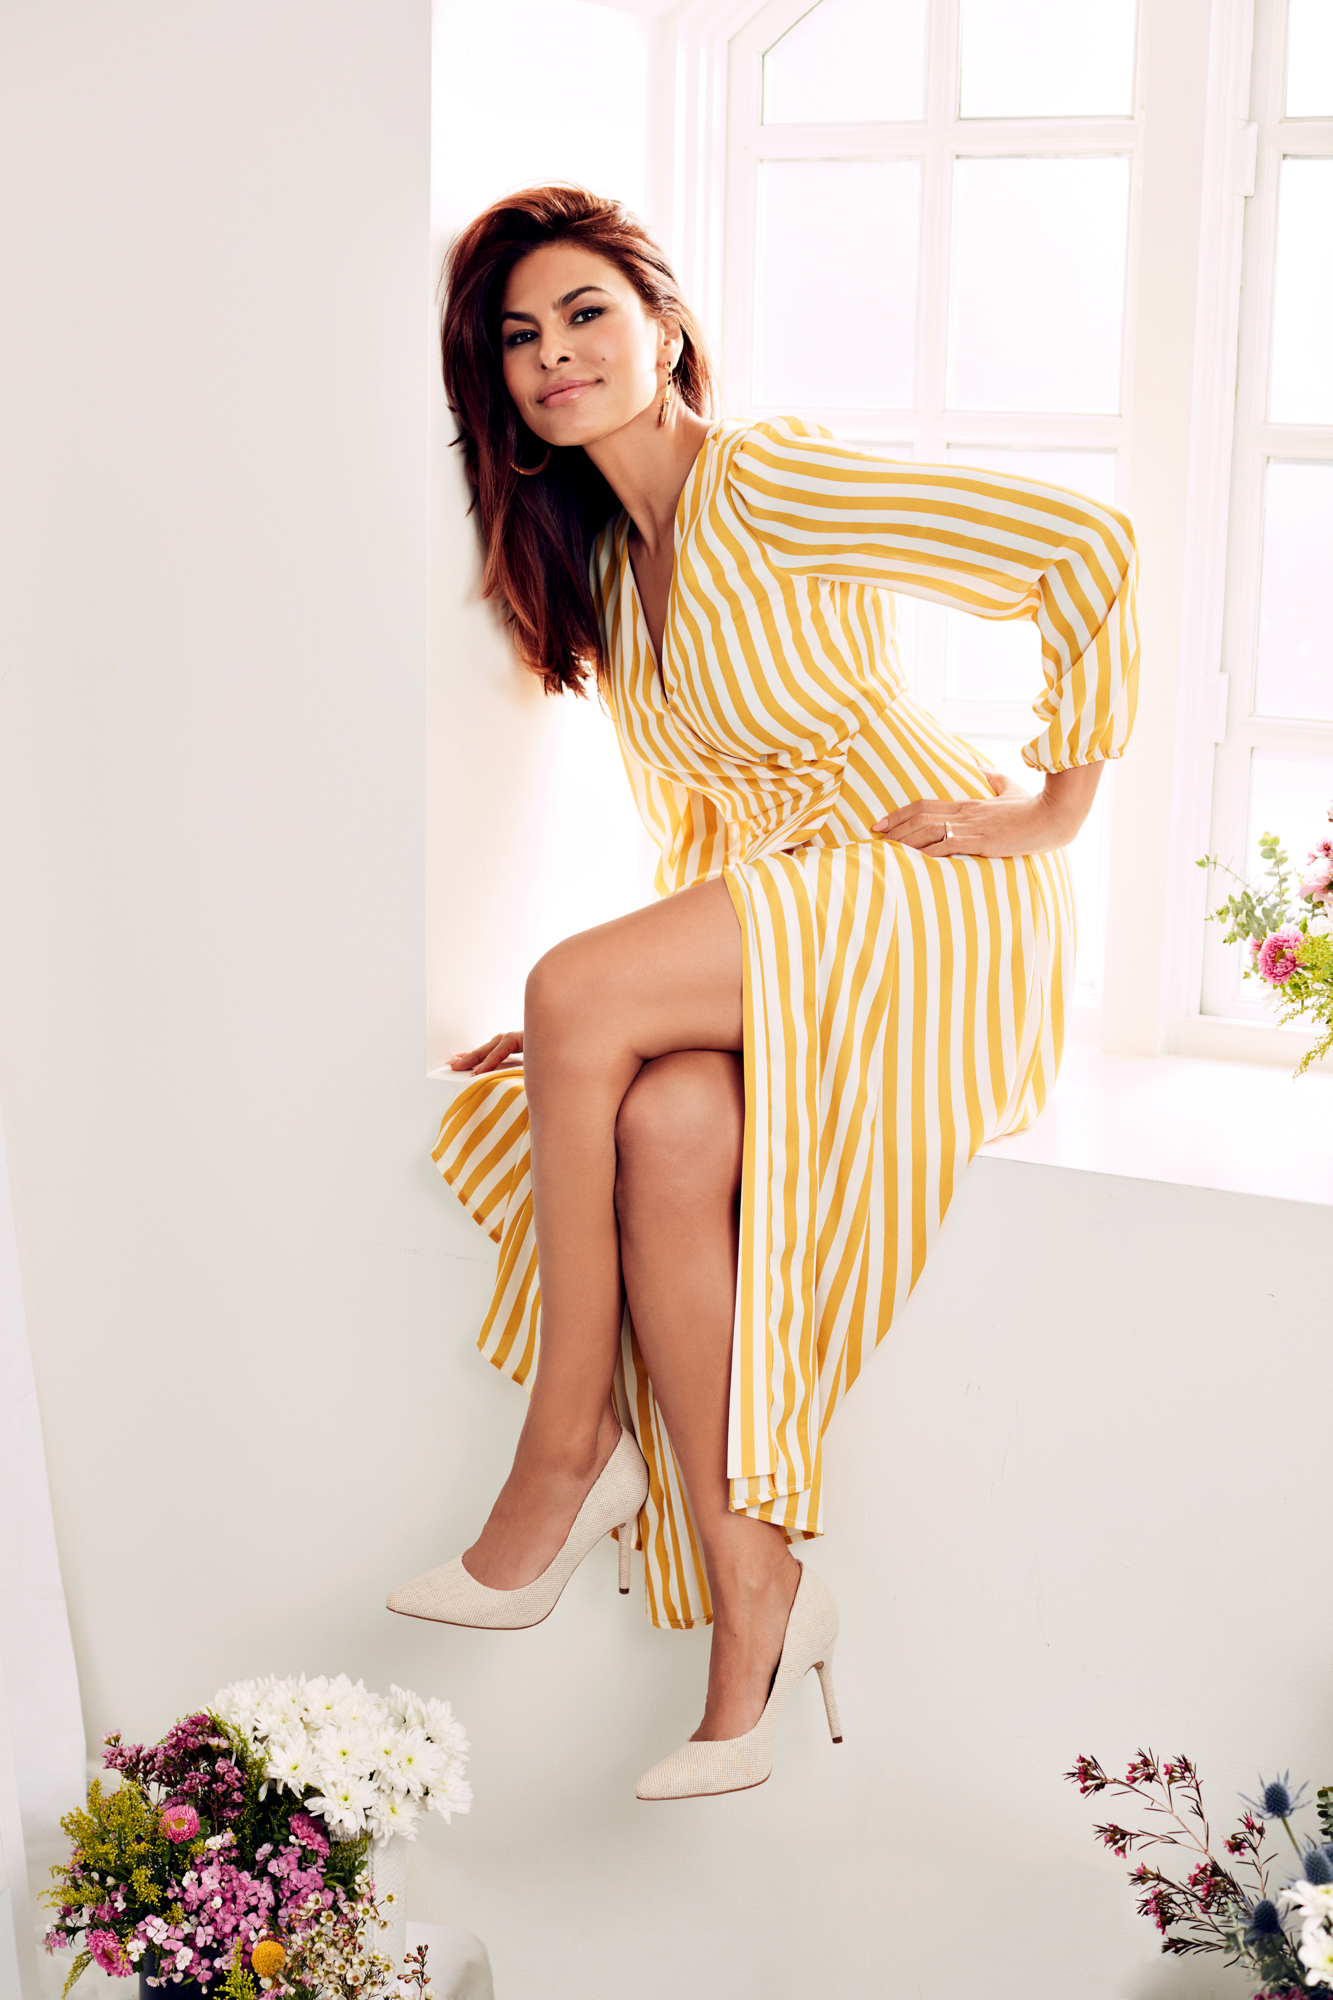 for use in 4.8.19 scoop firstEva Mendes 2019 new york & Company